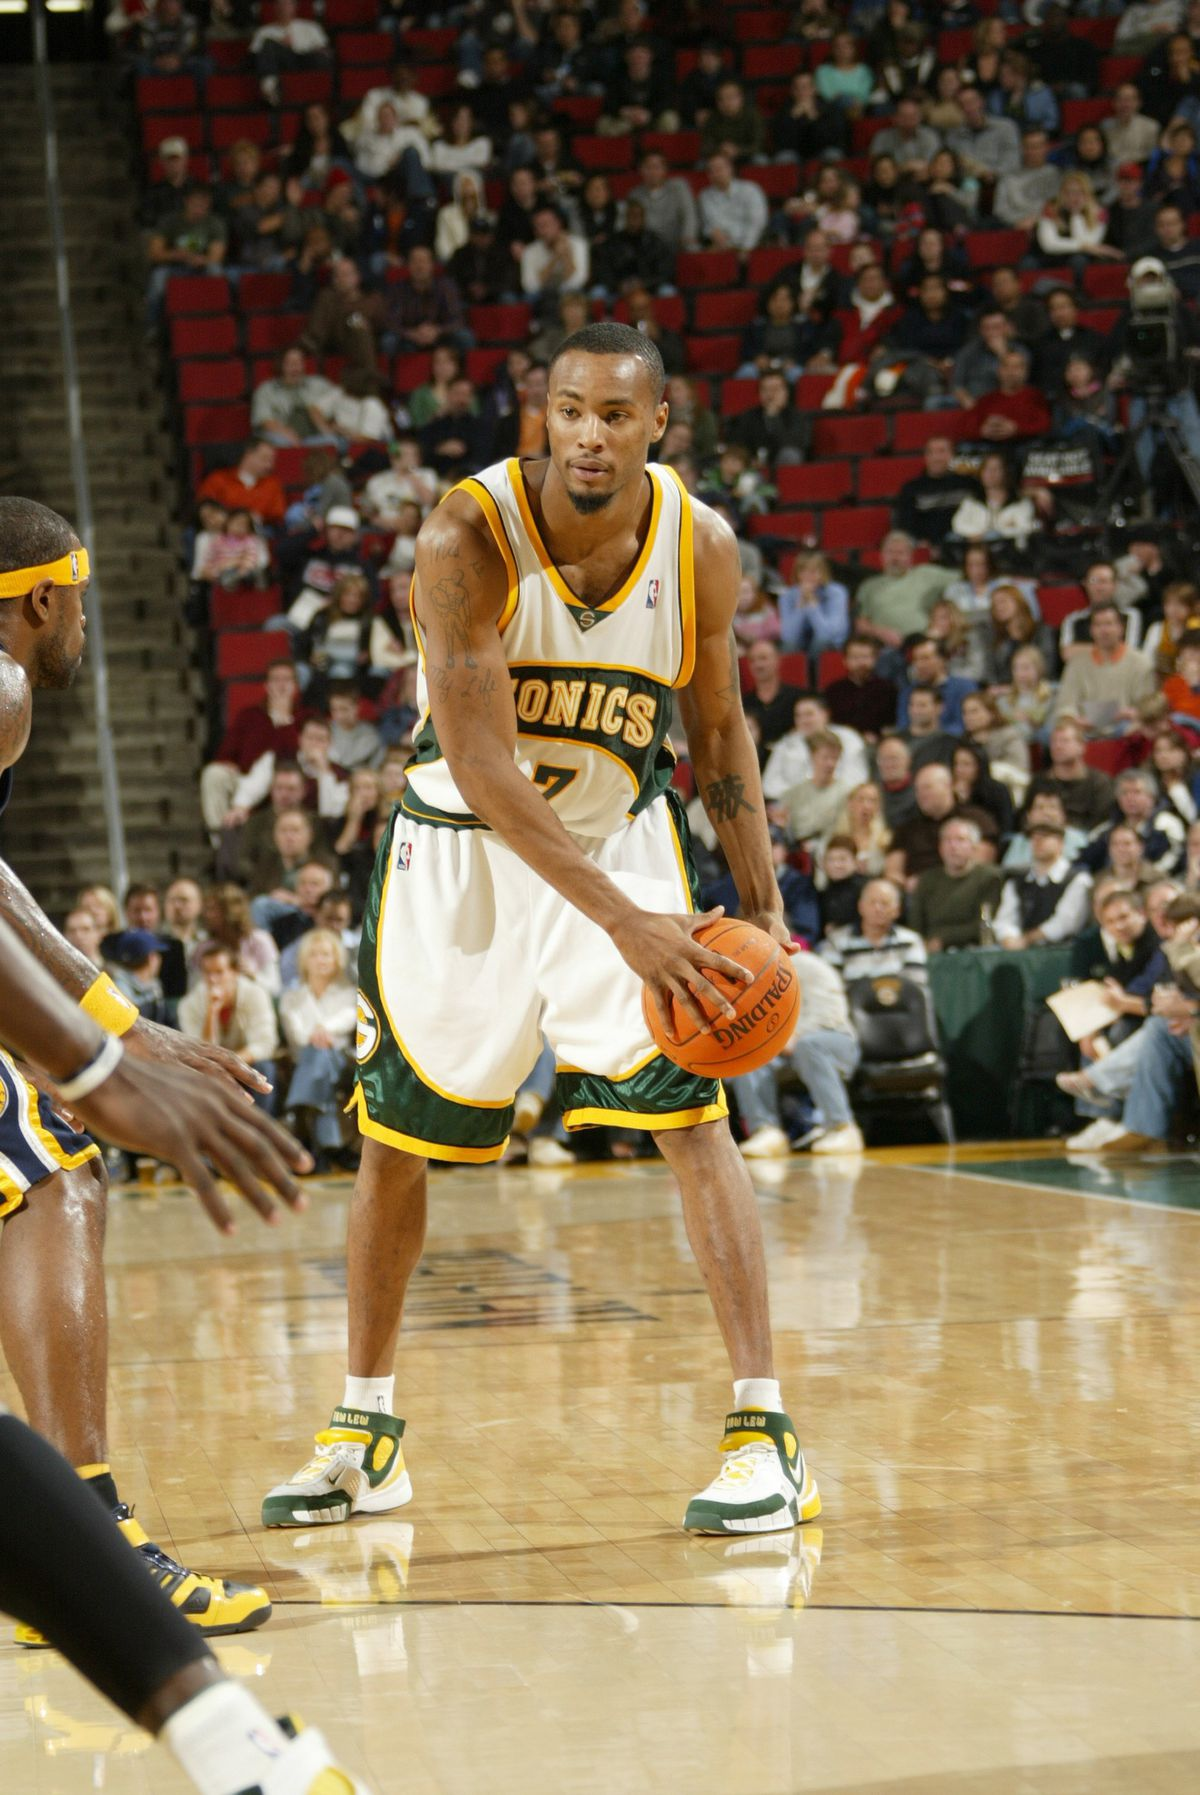 WA: Indiana Pacers v Seattle SuperSonics